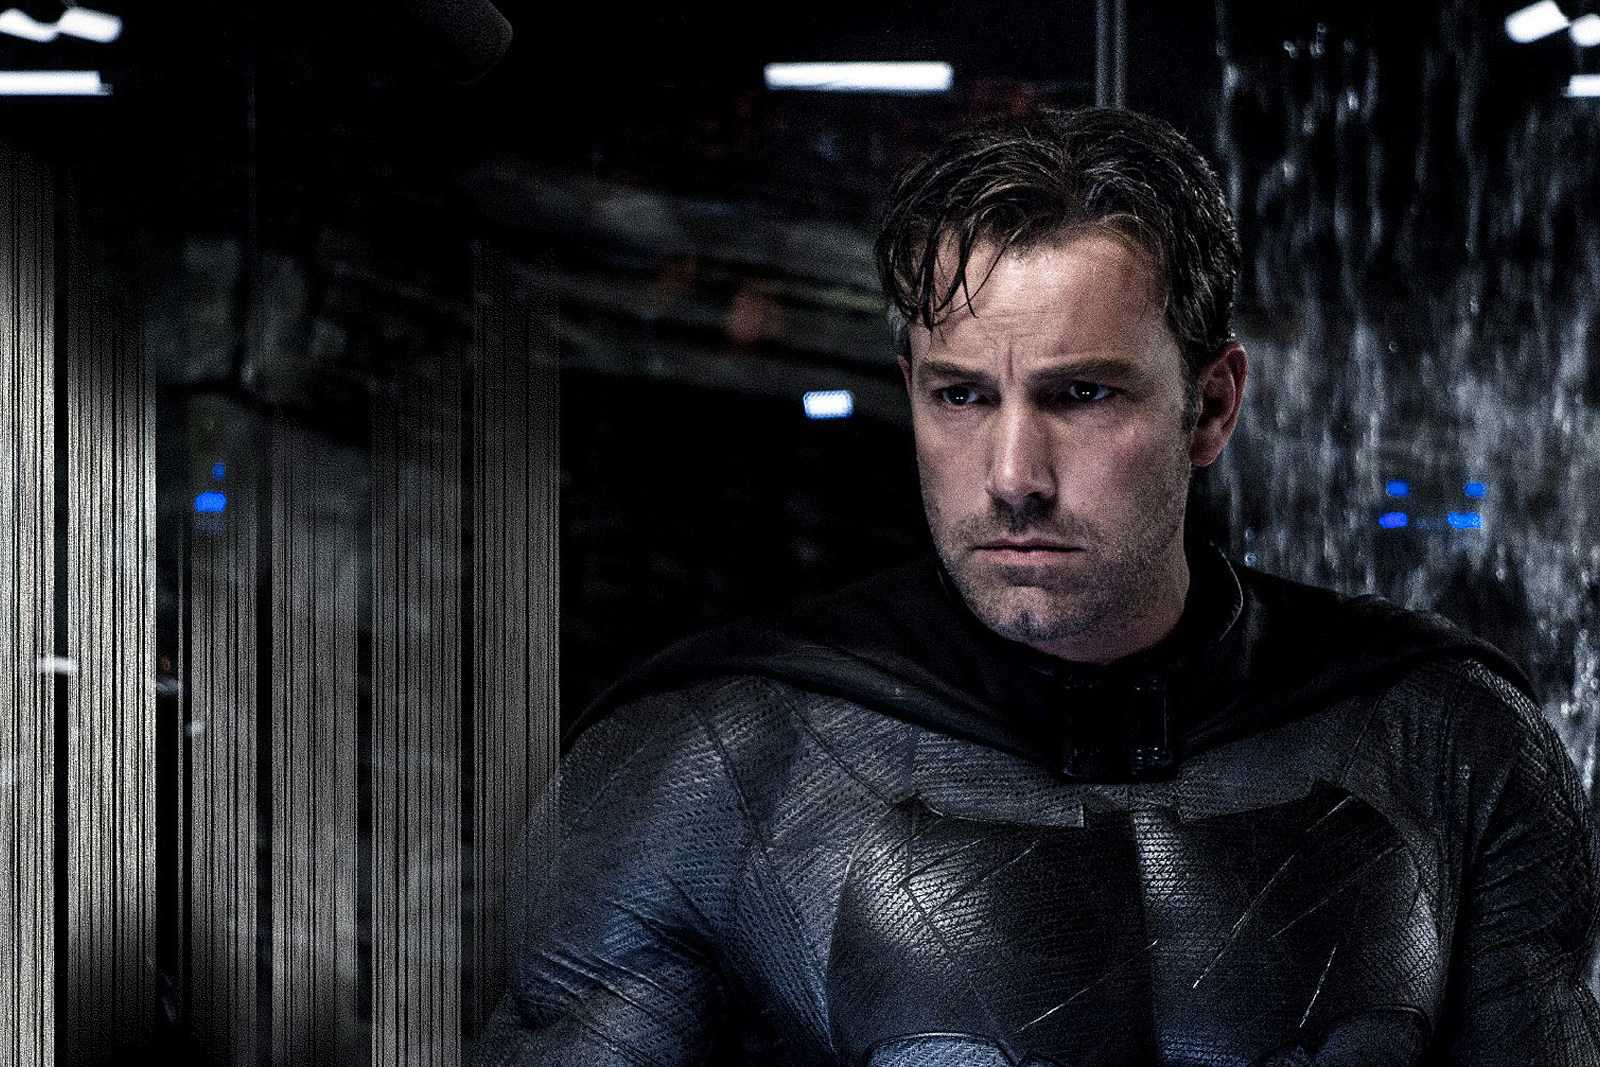 Ben Affleck as Batman (Warner Bros.)